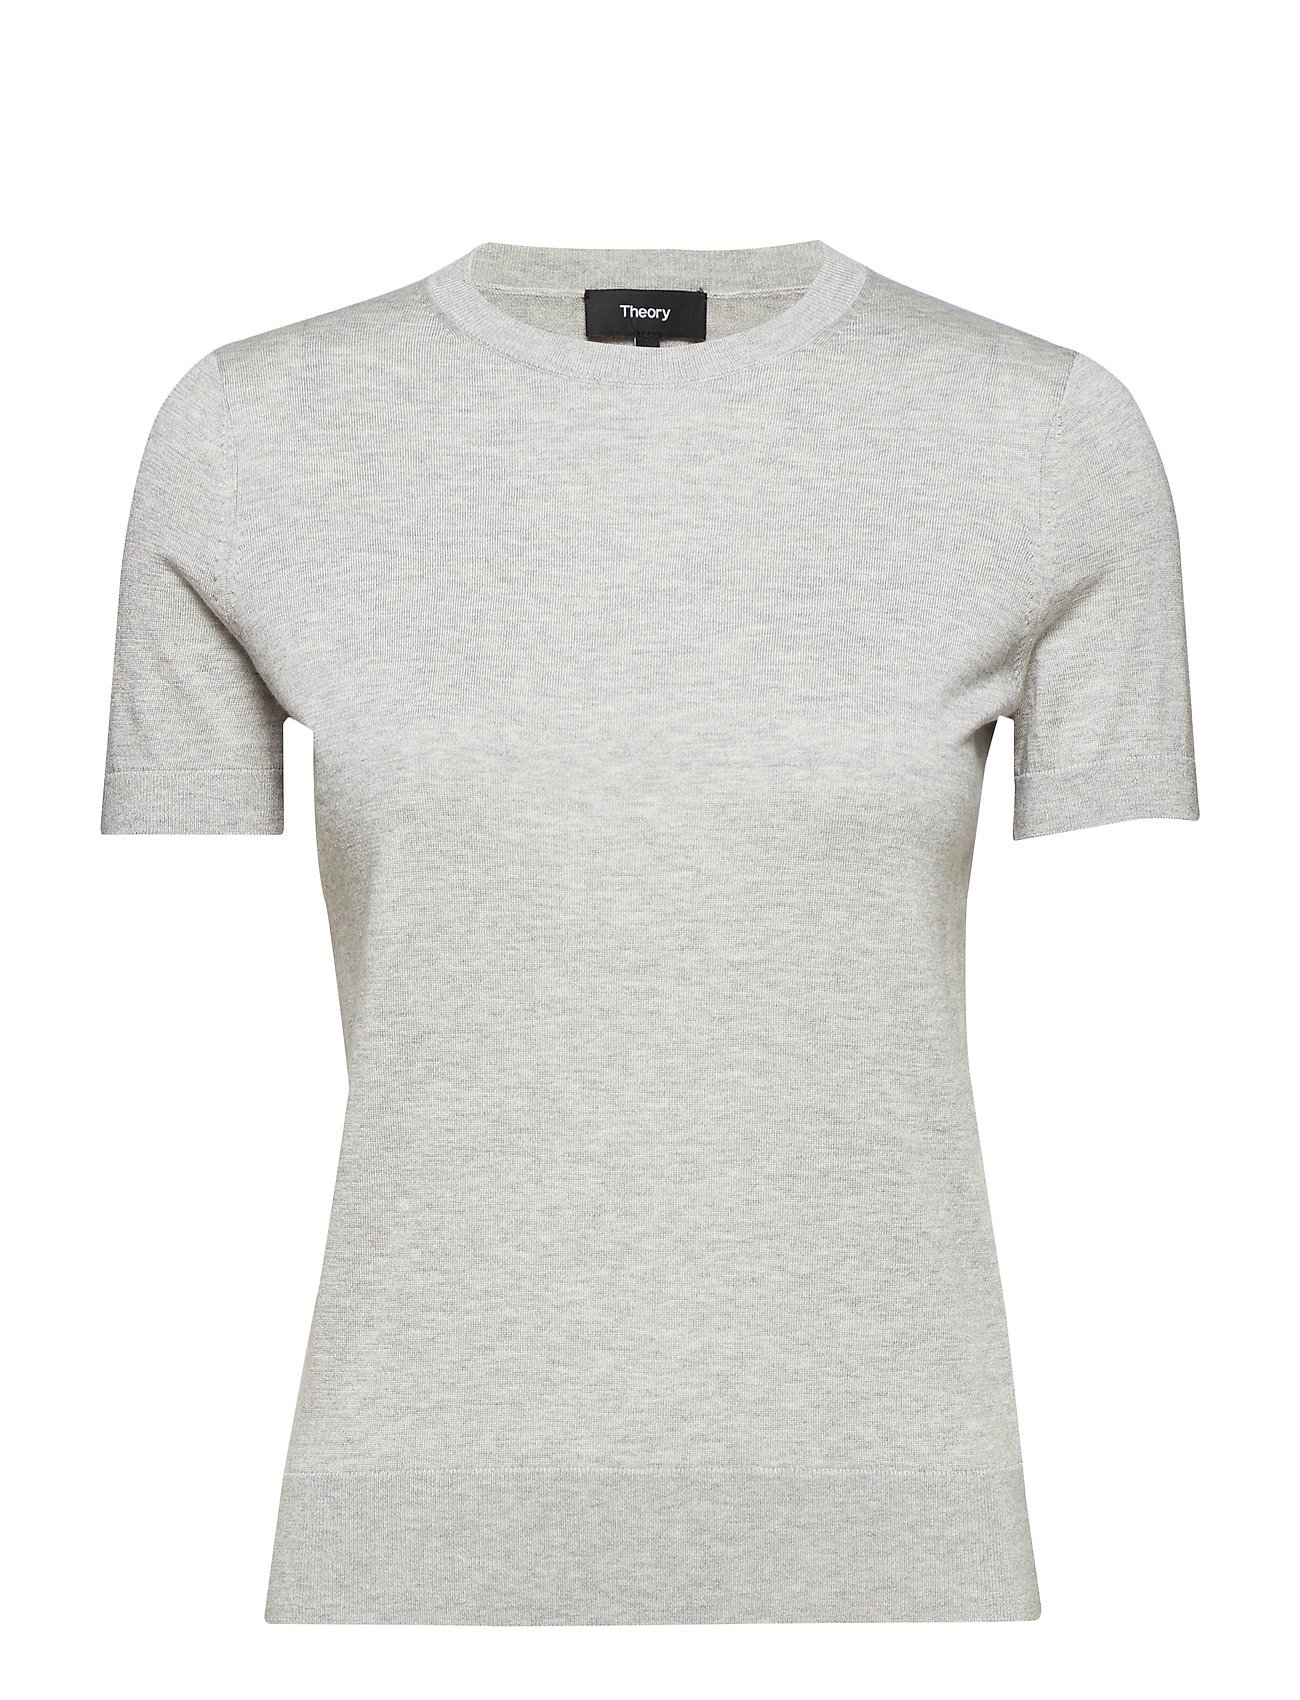 Basic Tee Clight GreyTheory M silken Heather fIvb76gyY